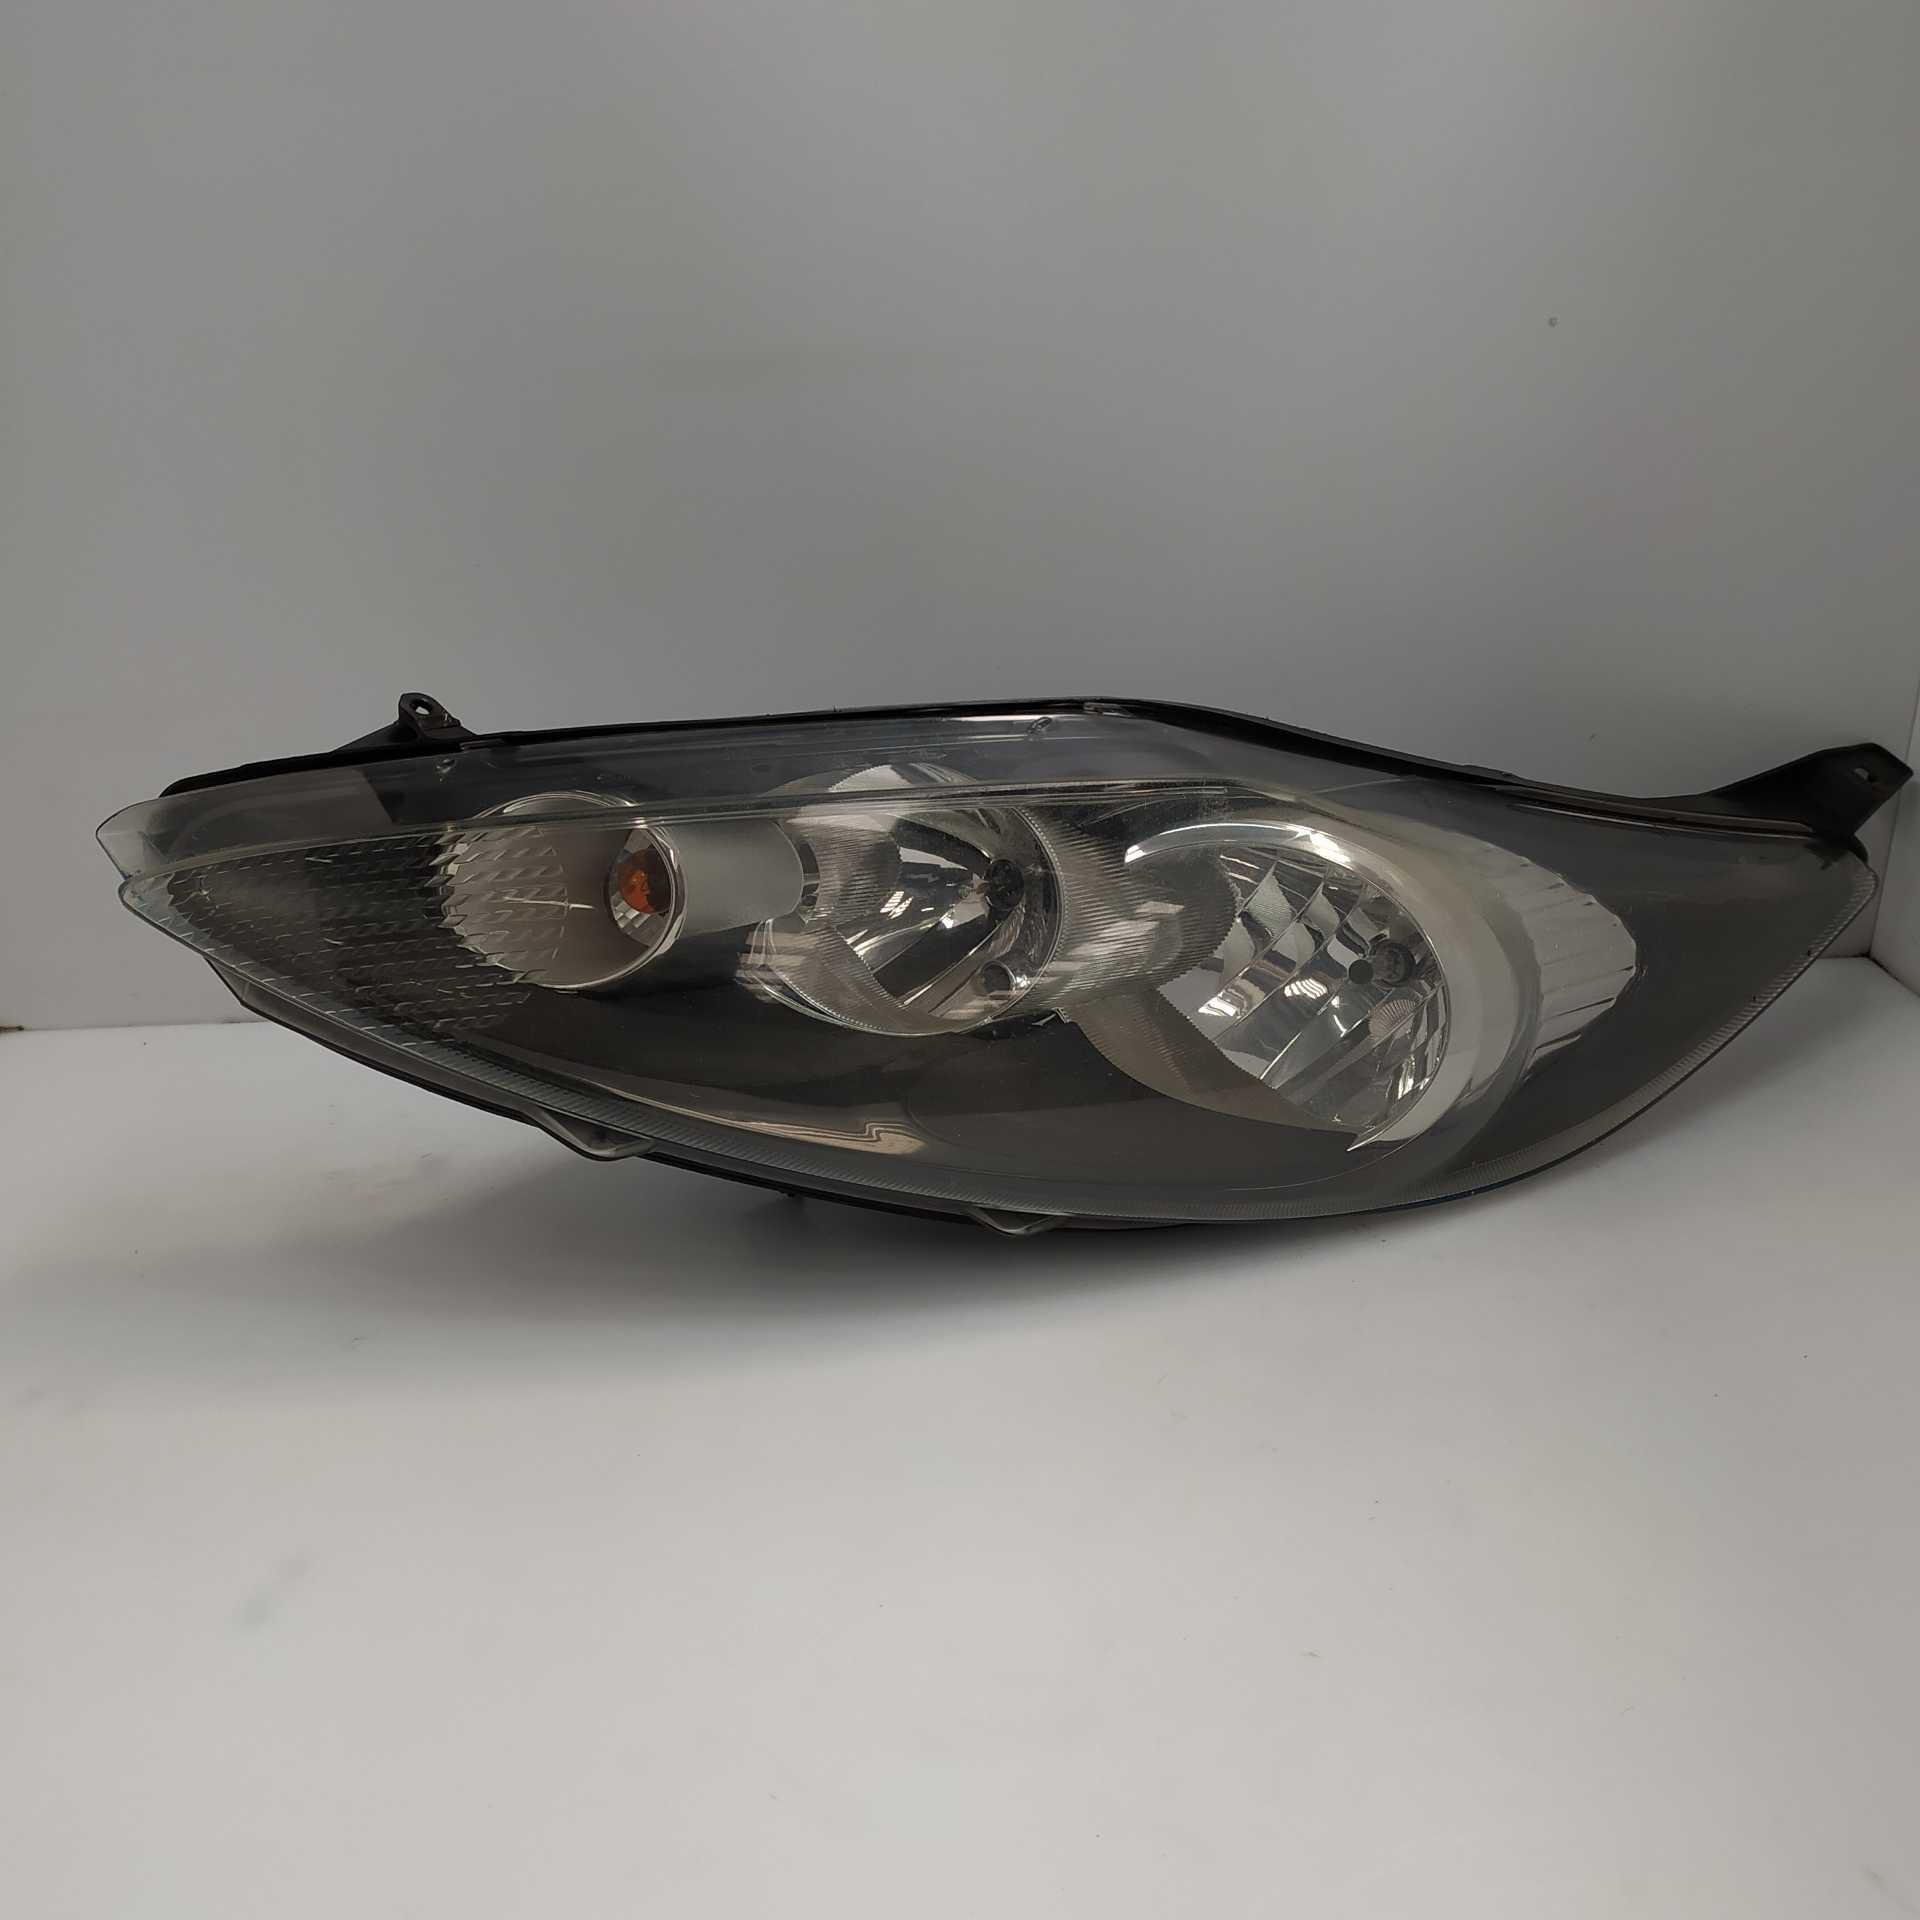 FARO NORMAL DEL. IZDO. FORD FOCUS II 1.6 TDCi (80 KW / 109 CV) (07.2004 - 09.2012)